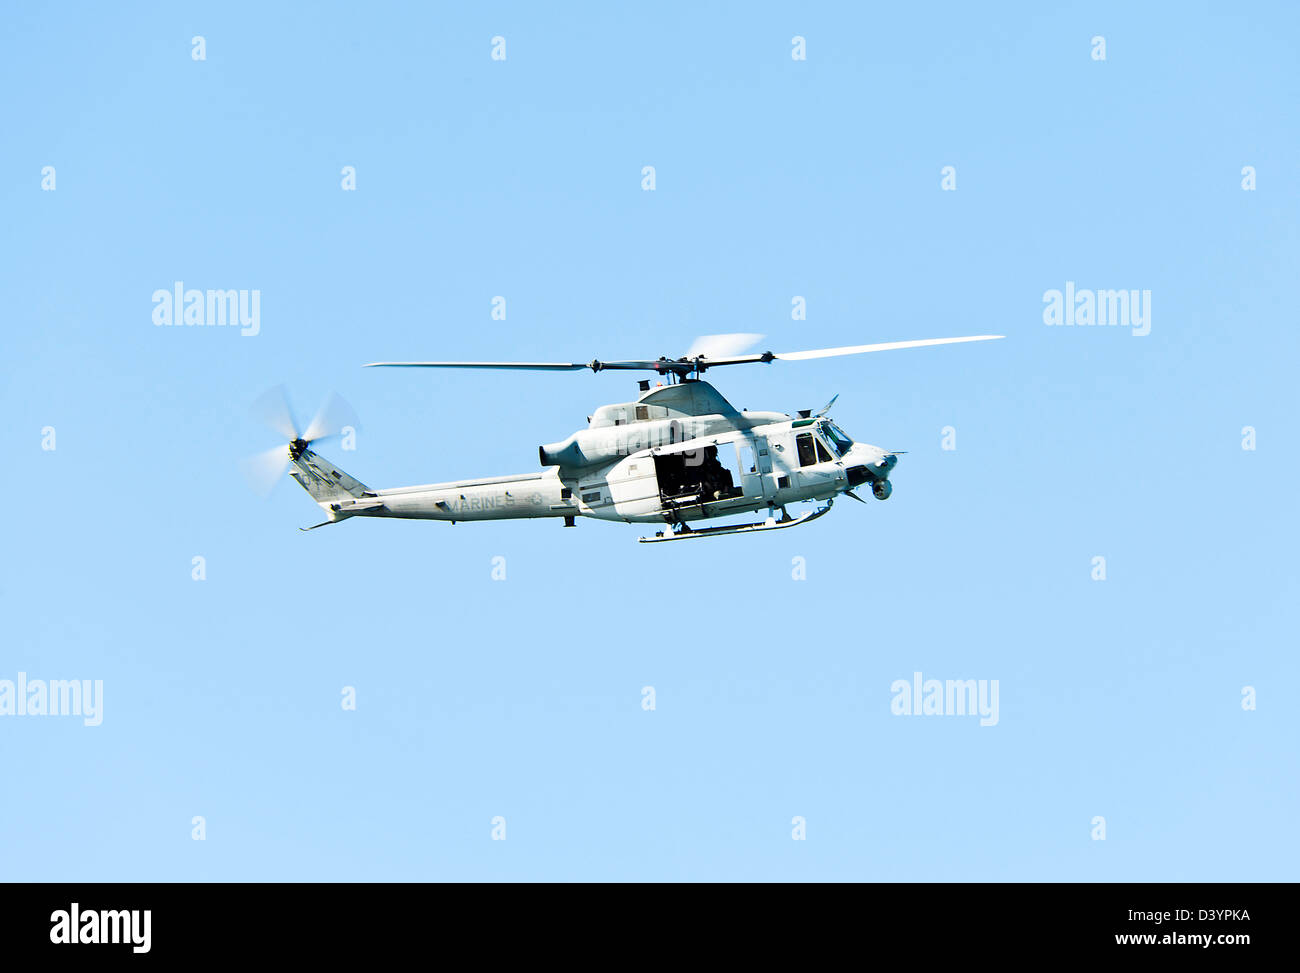 US Marines Bell UH-1Y Venom Helicopter 167994 In Flight Over San Diego California United States America USA Stock Photo